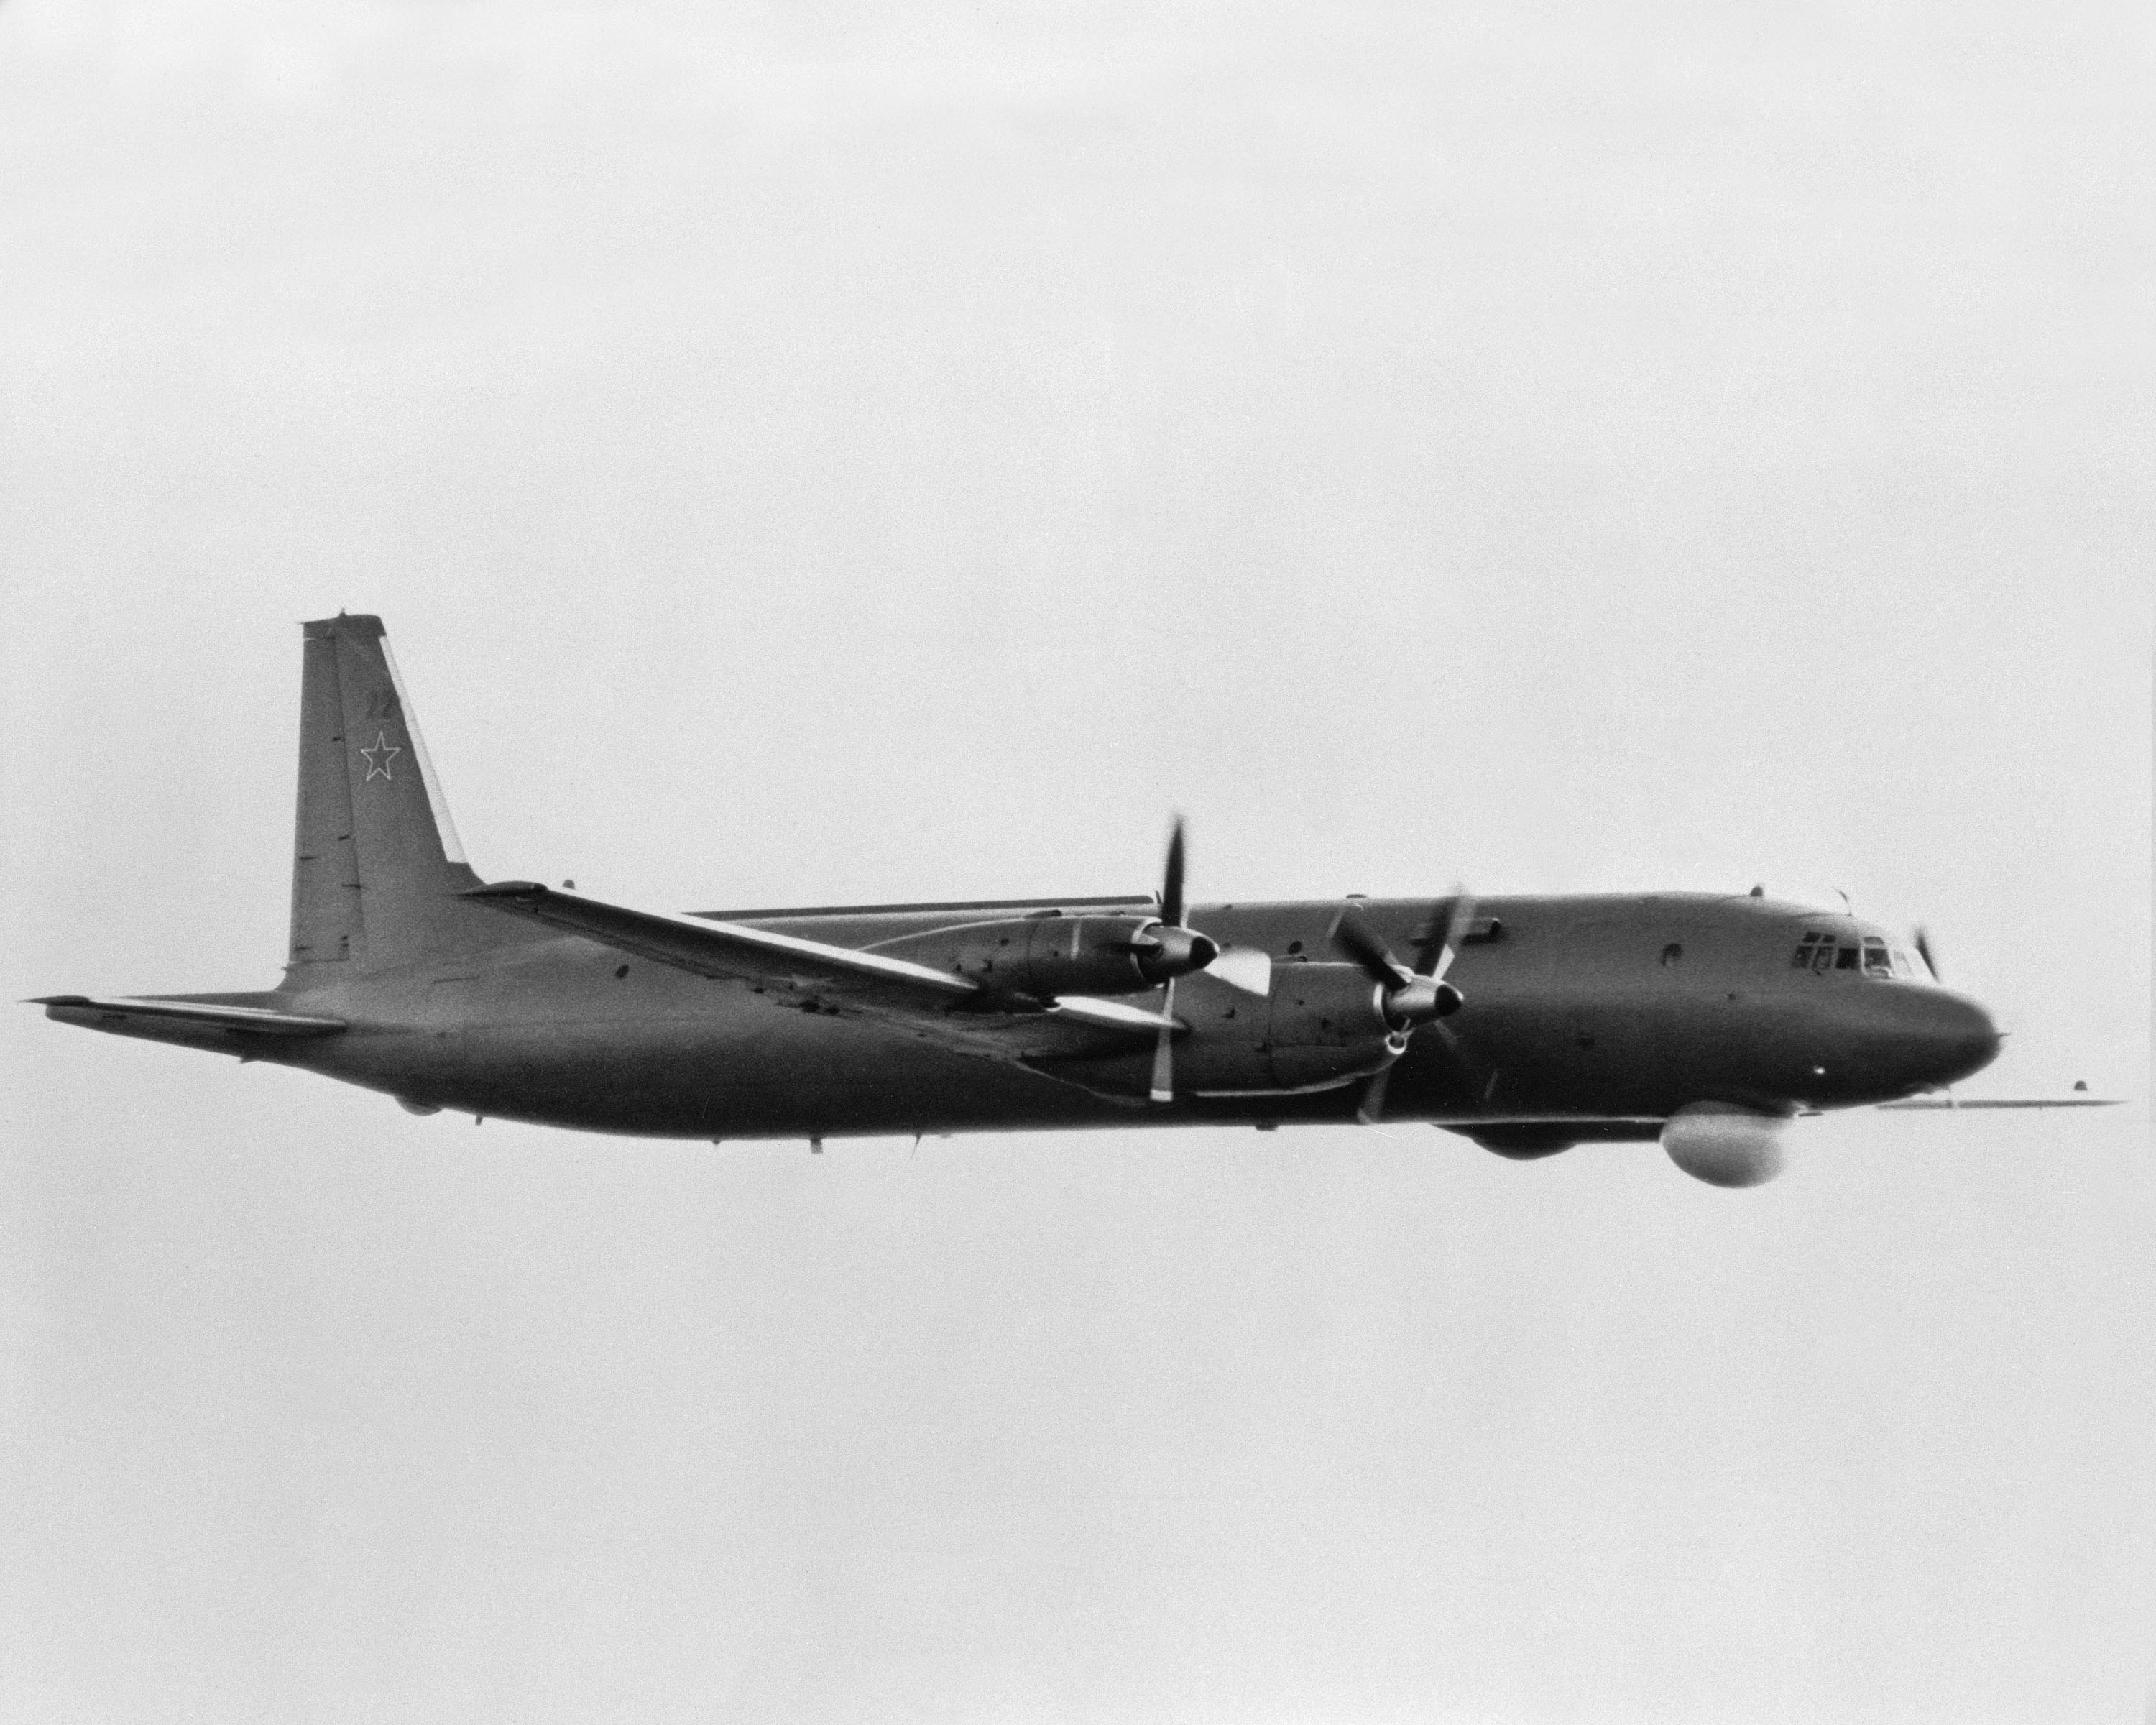 An air-to-air right side view of a Soviet I1-38 May anti-submarine warfare aircraft